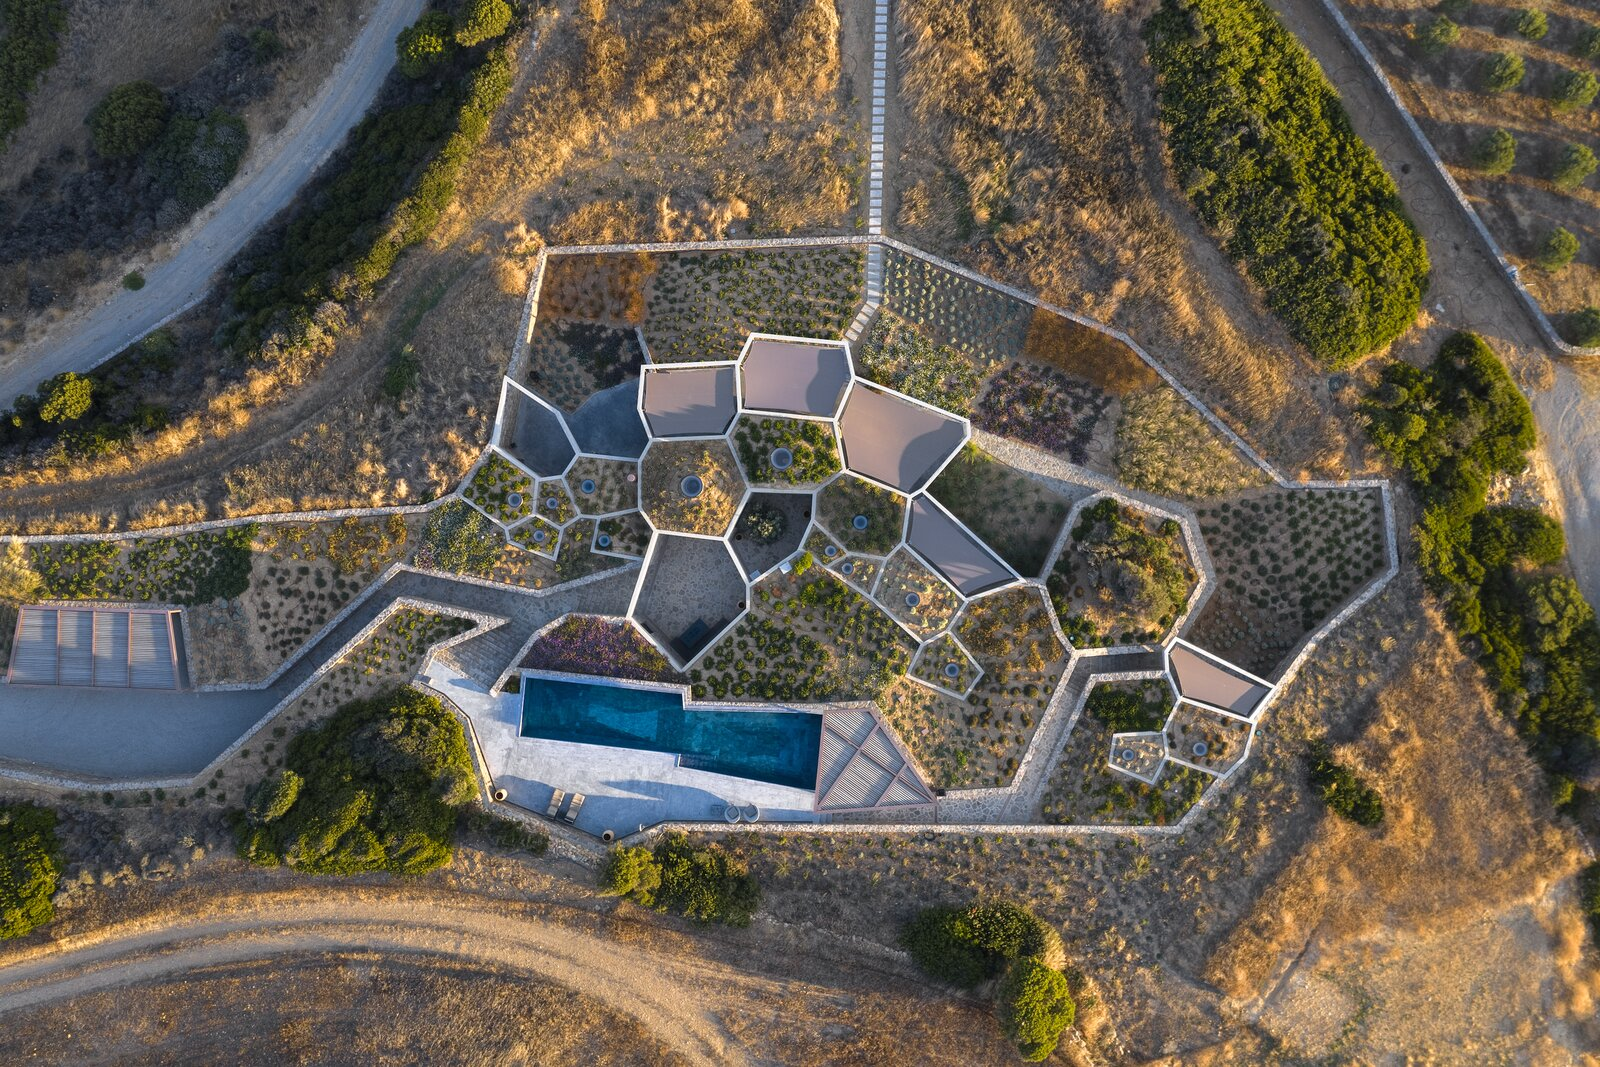 Hourglass Corral by DECA Architecture